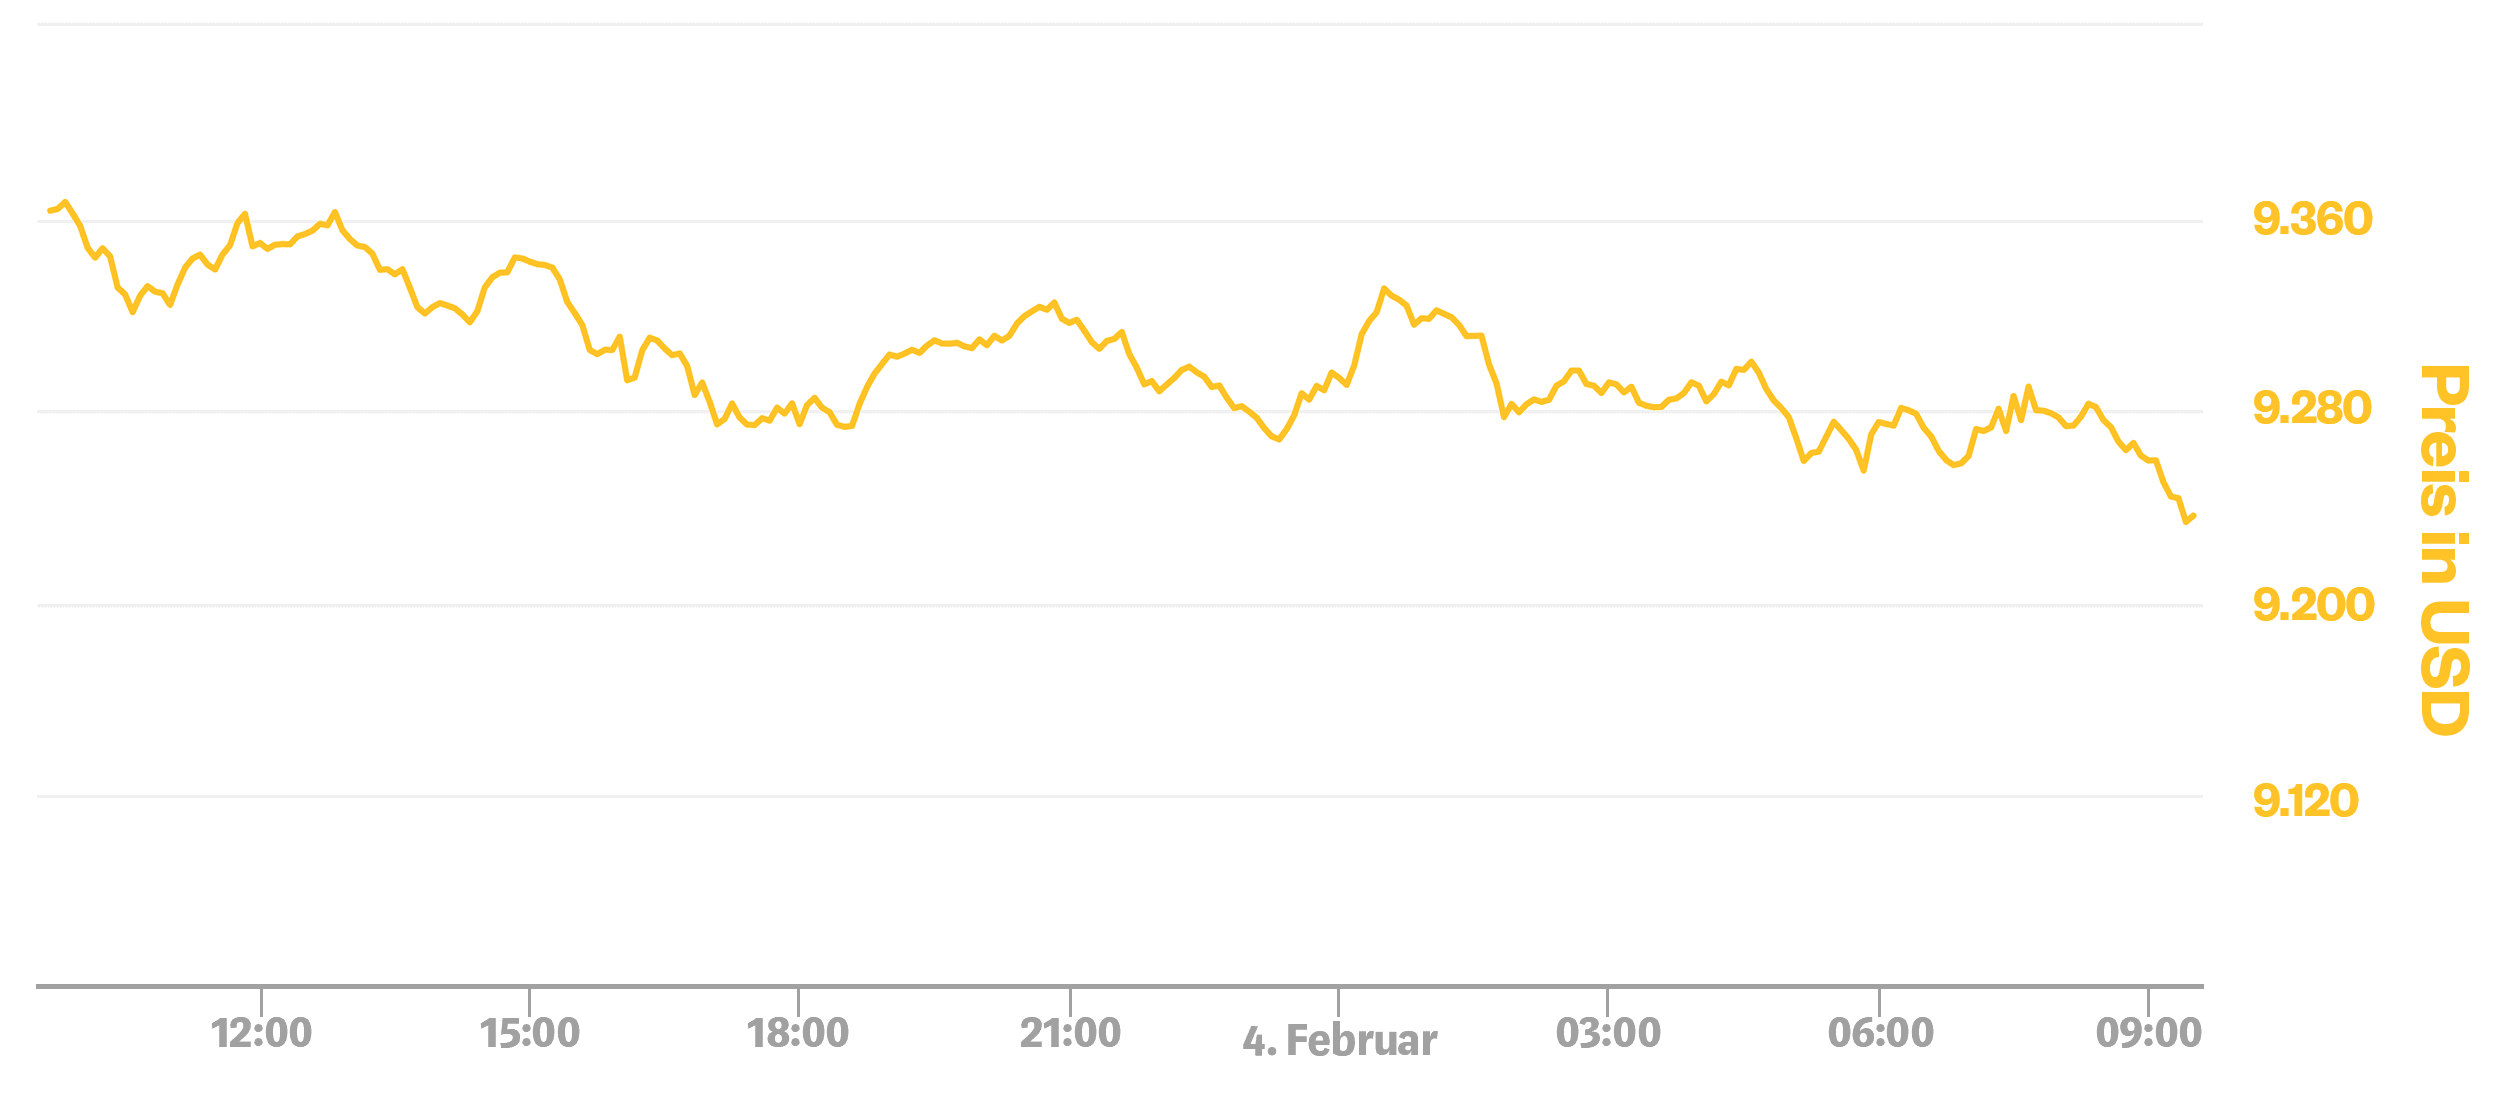 Bitcoin exchange rate over the 24-hour course